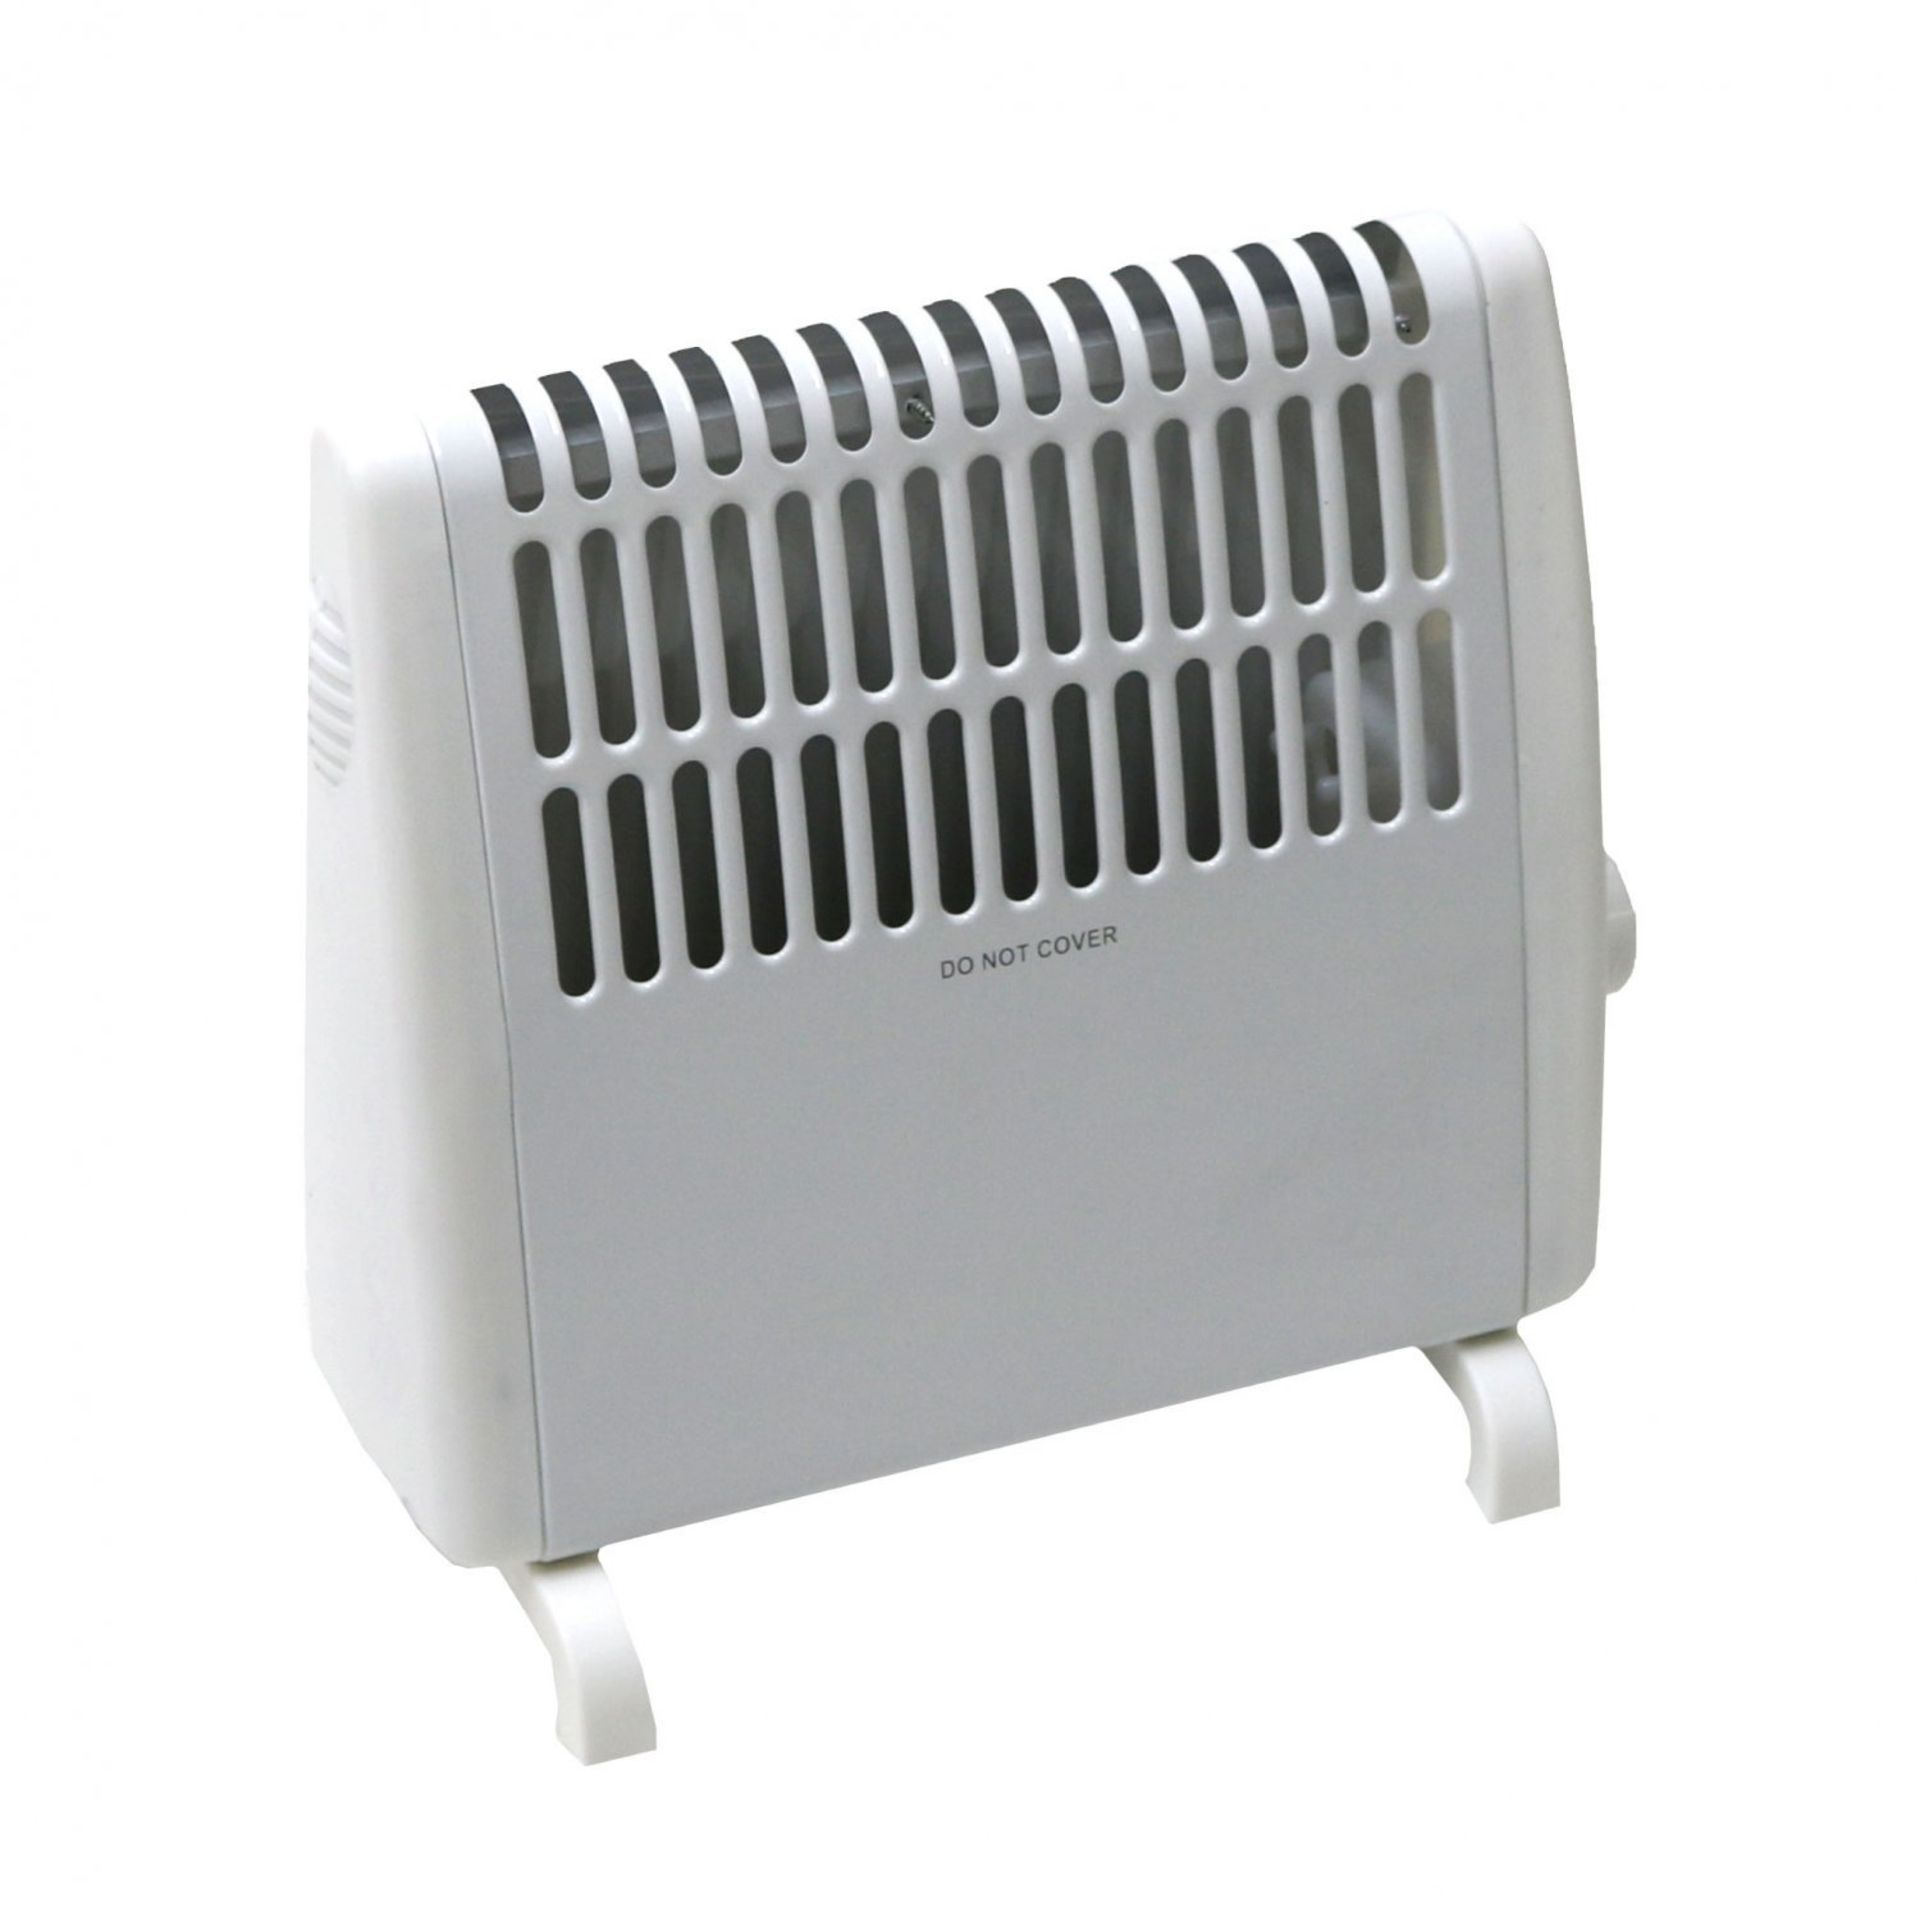 Lot 35 - (RU25) 450W Frost Electric Convector Heater Free Standing. 450W Frost Electric Convector Heater...